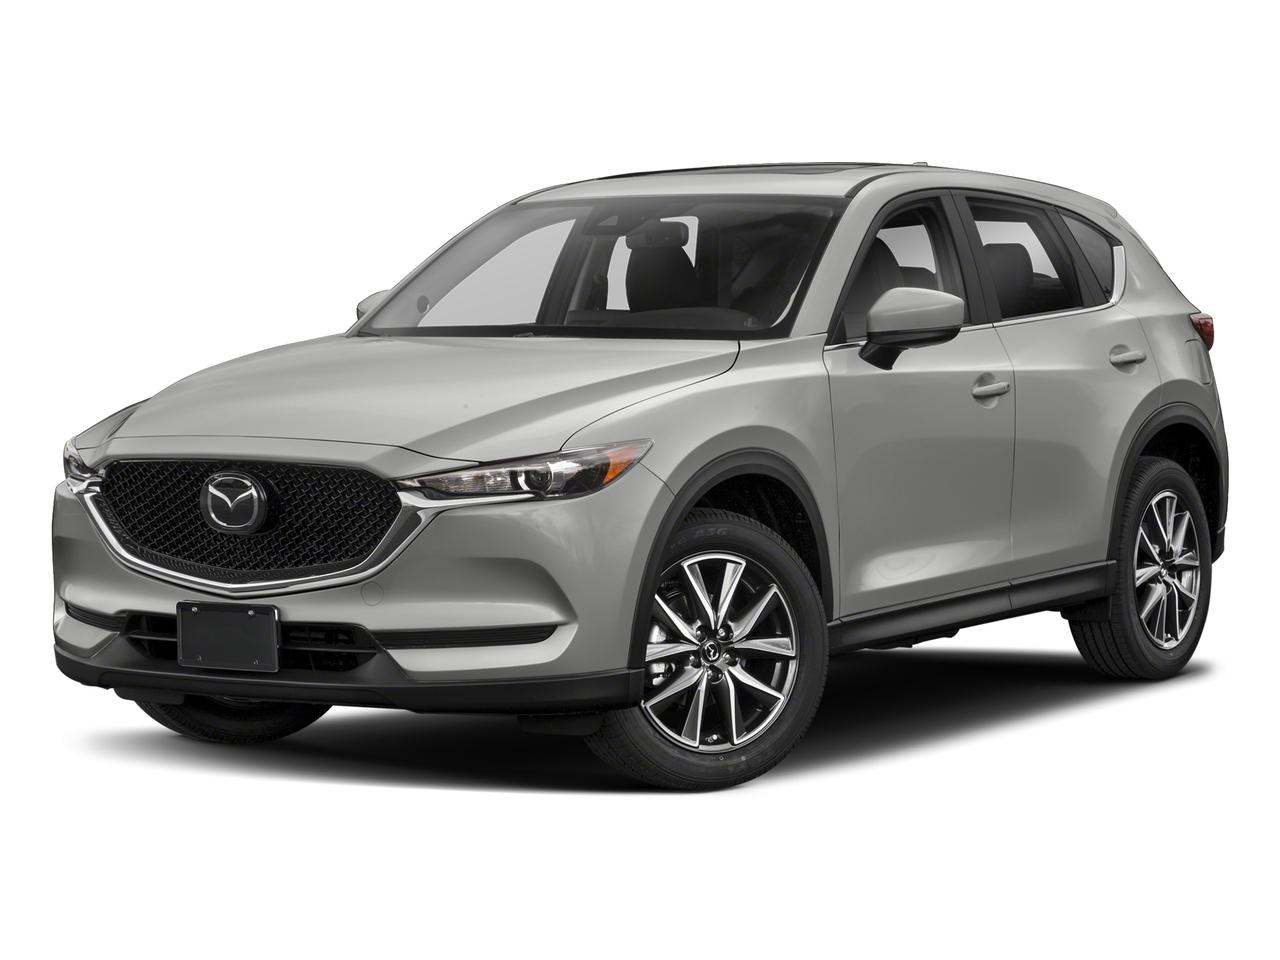 2018 Mazda CX-5 Vehicle Photo in West Chester, PA 19382